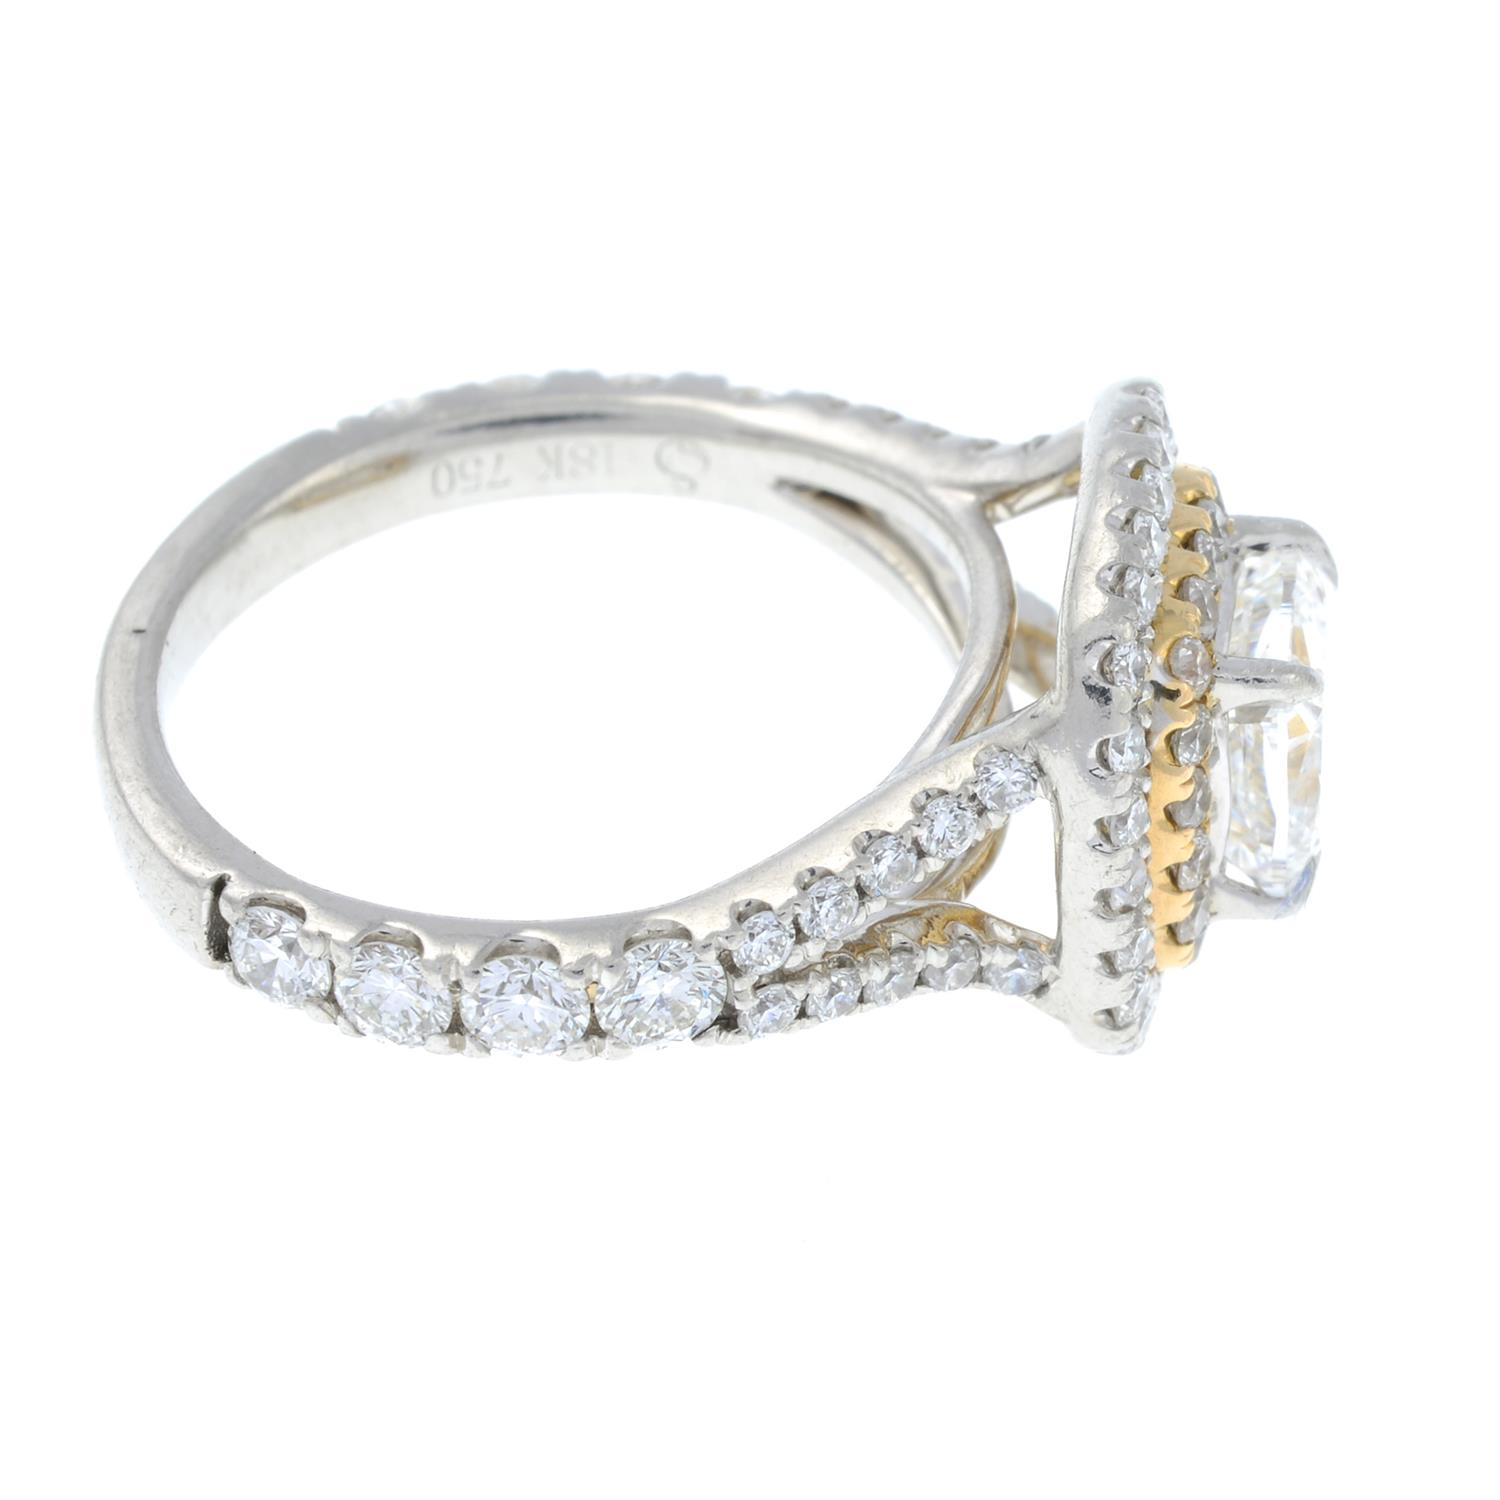 A platinum cushion-shape diamond ring, with brilliant-cut diamond surrounds and shoulders. - Image 4 of 7